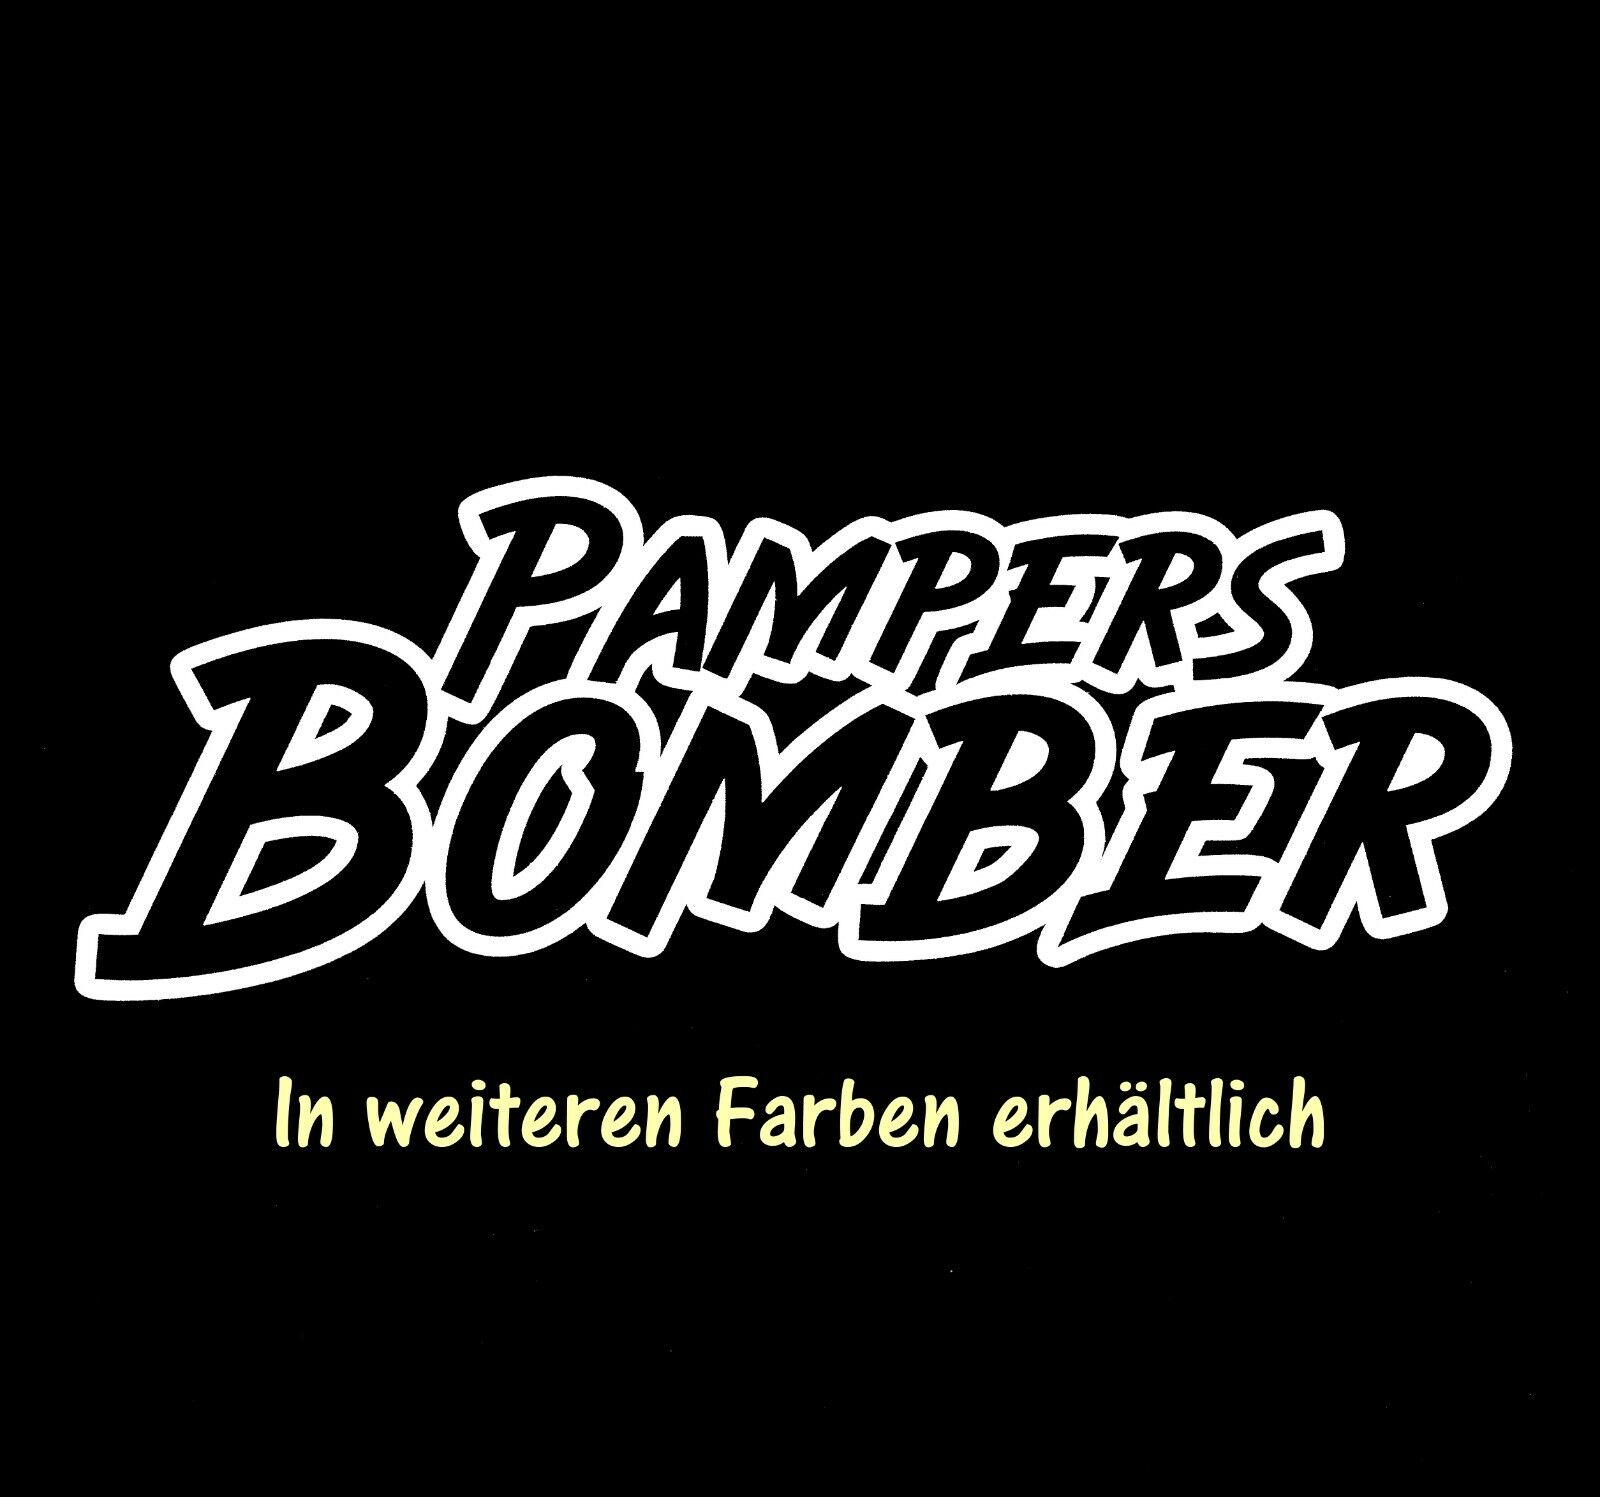 ♥ Pampers Bomber ♥ Aufkleber Kinder Baby Mama Papa Opa Oma Kids Taxi Familie ♥